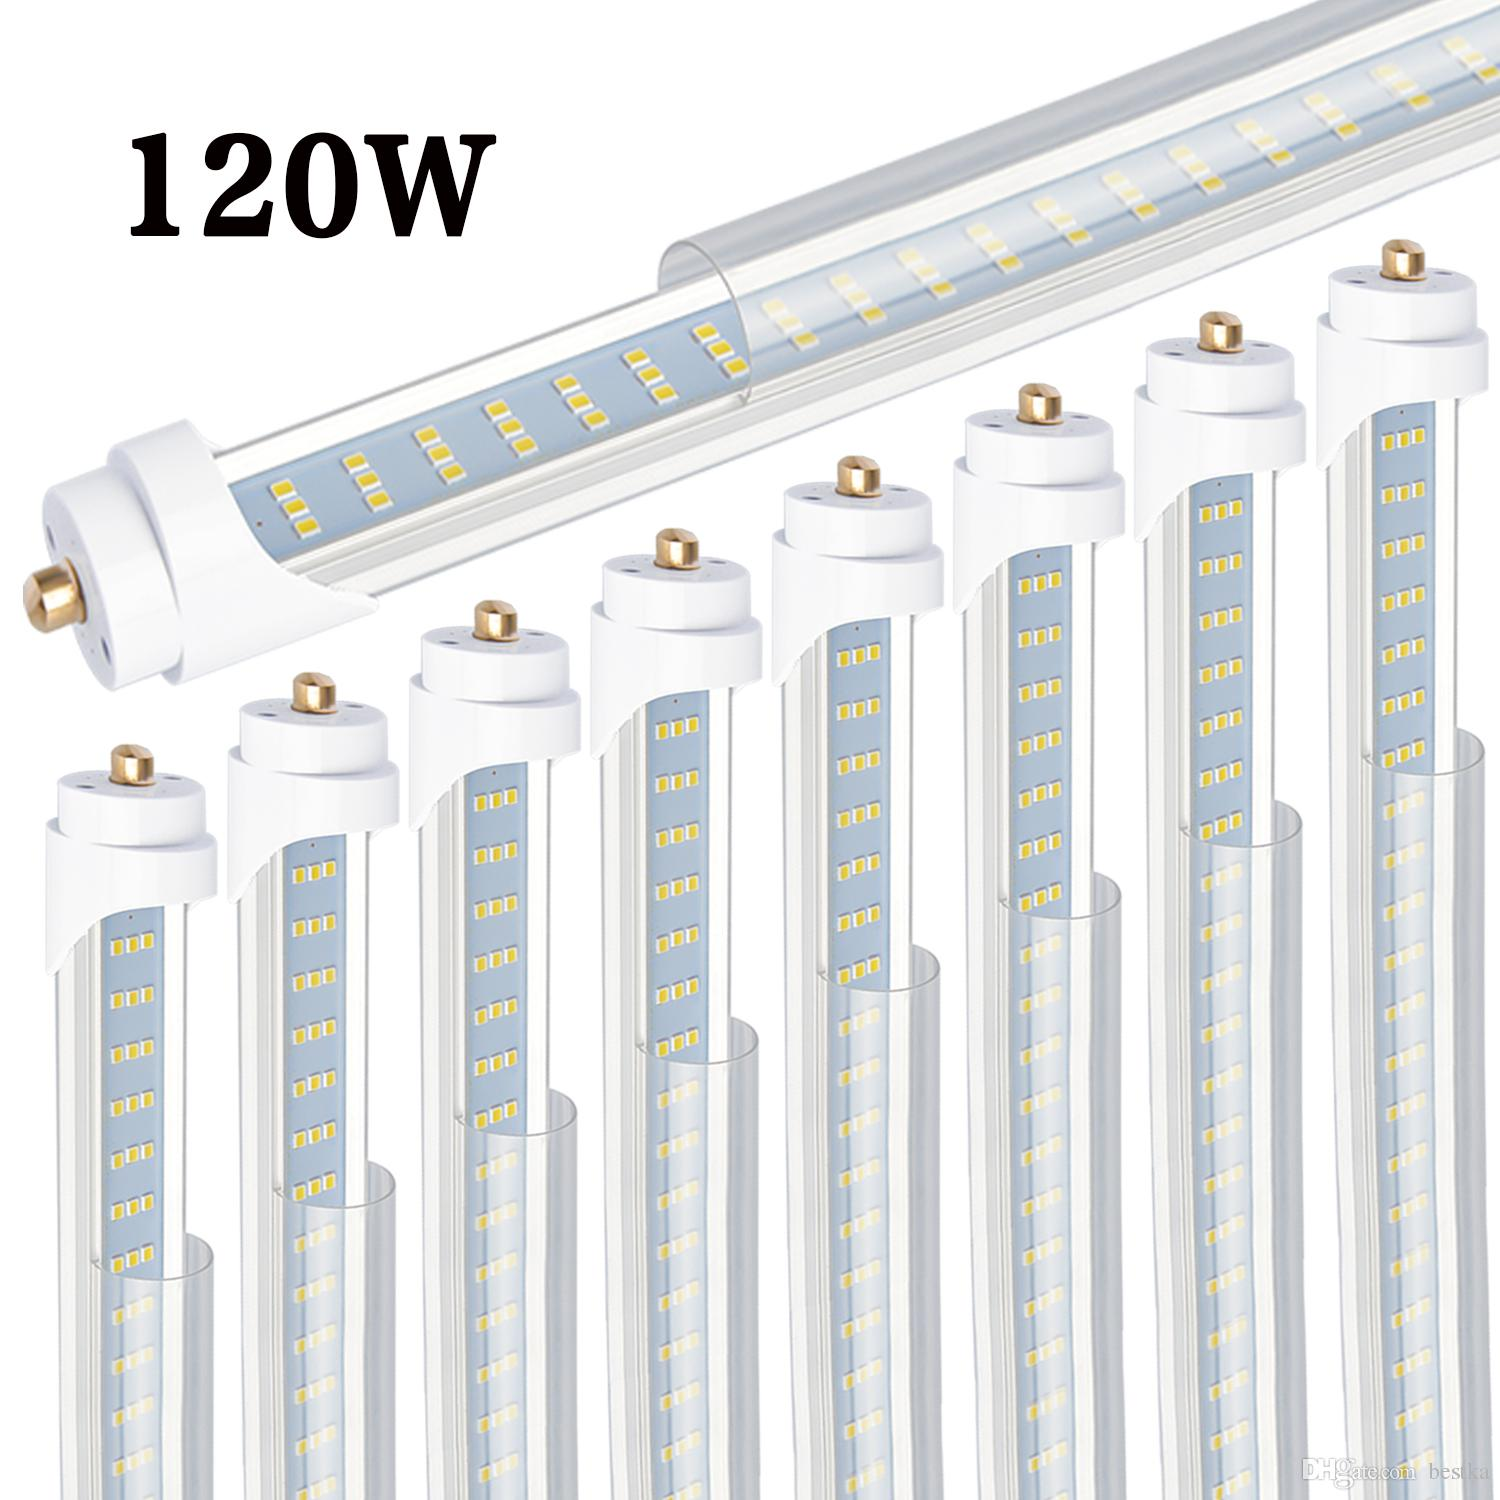 hight resolution of 8 t8 t12 led tube light 120w 6000k clear cover 96 3 row led